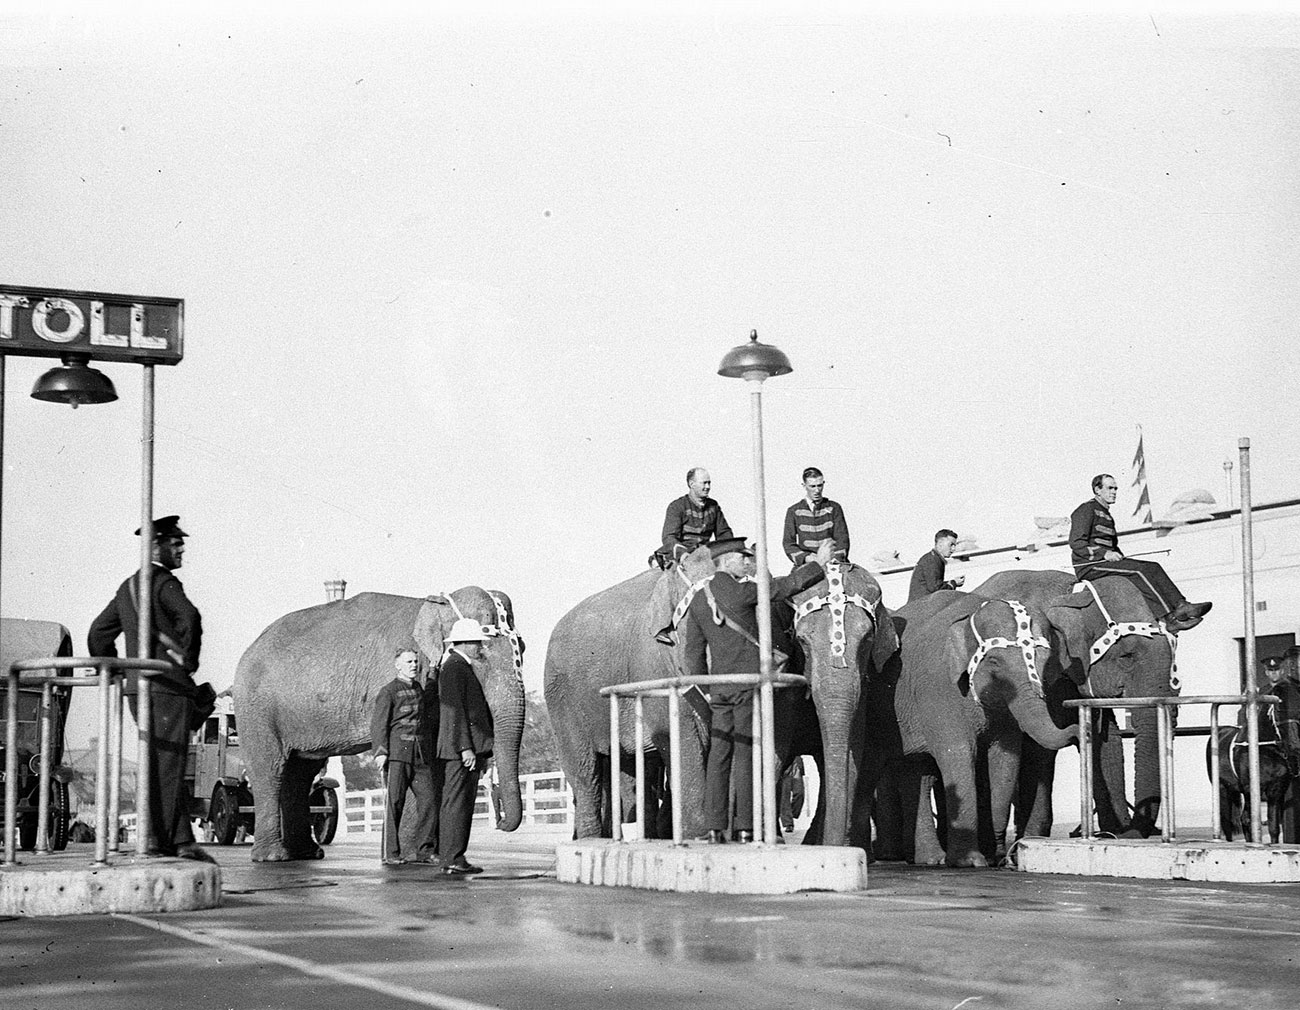 Elephants and their mahouts at Bridge toll-bar, photograph by Sam Hood, 1932, Home and Away – 5791